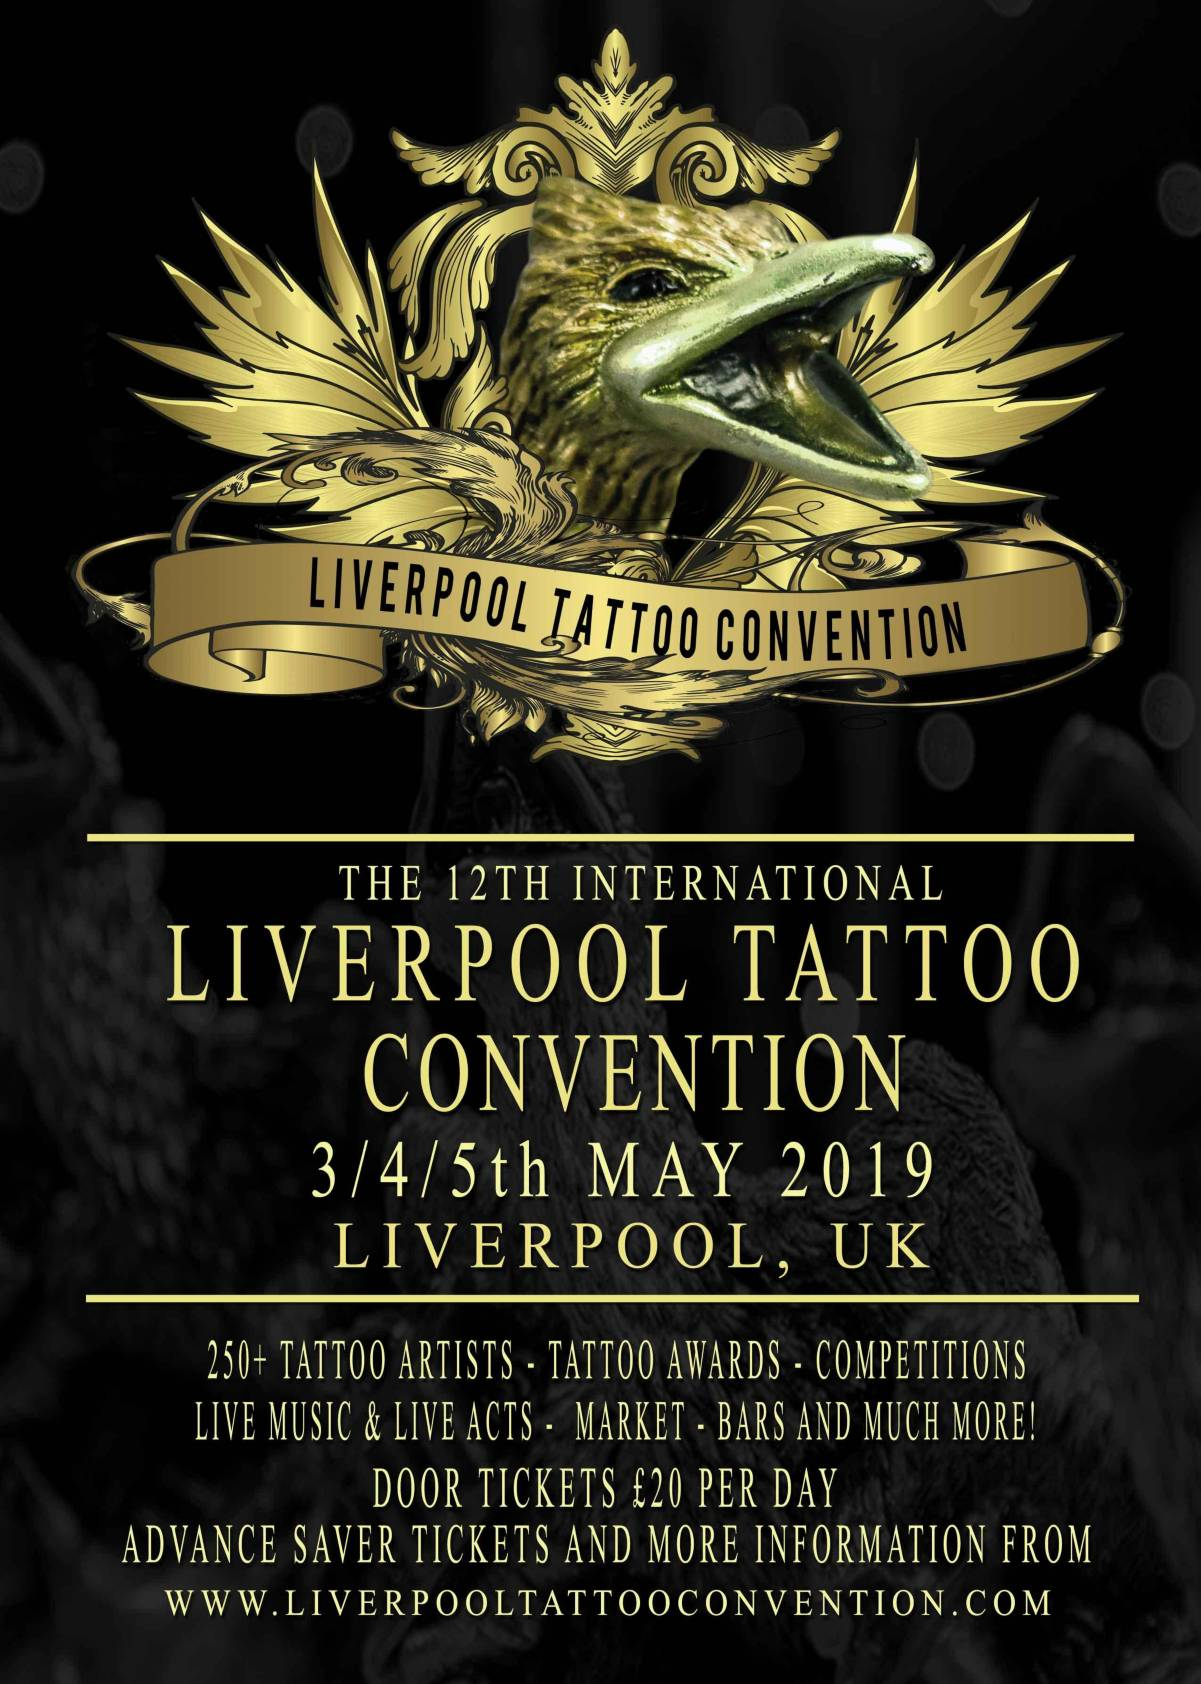 _liverpool-tattoo-convention-2019_eflyer